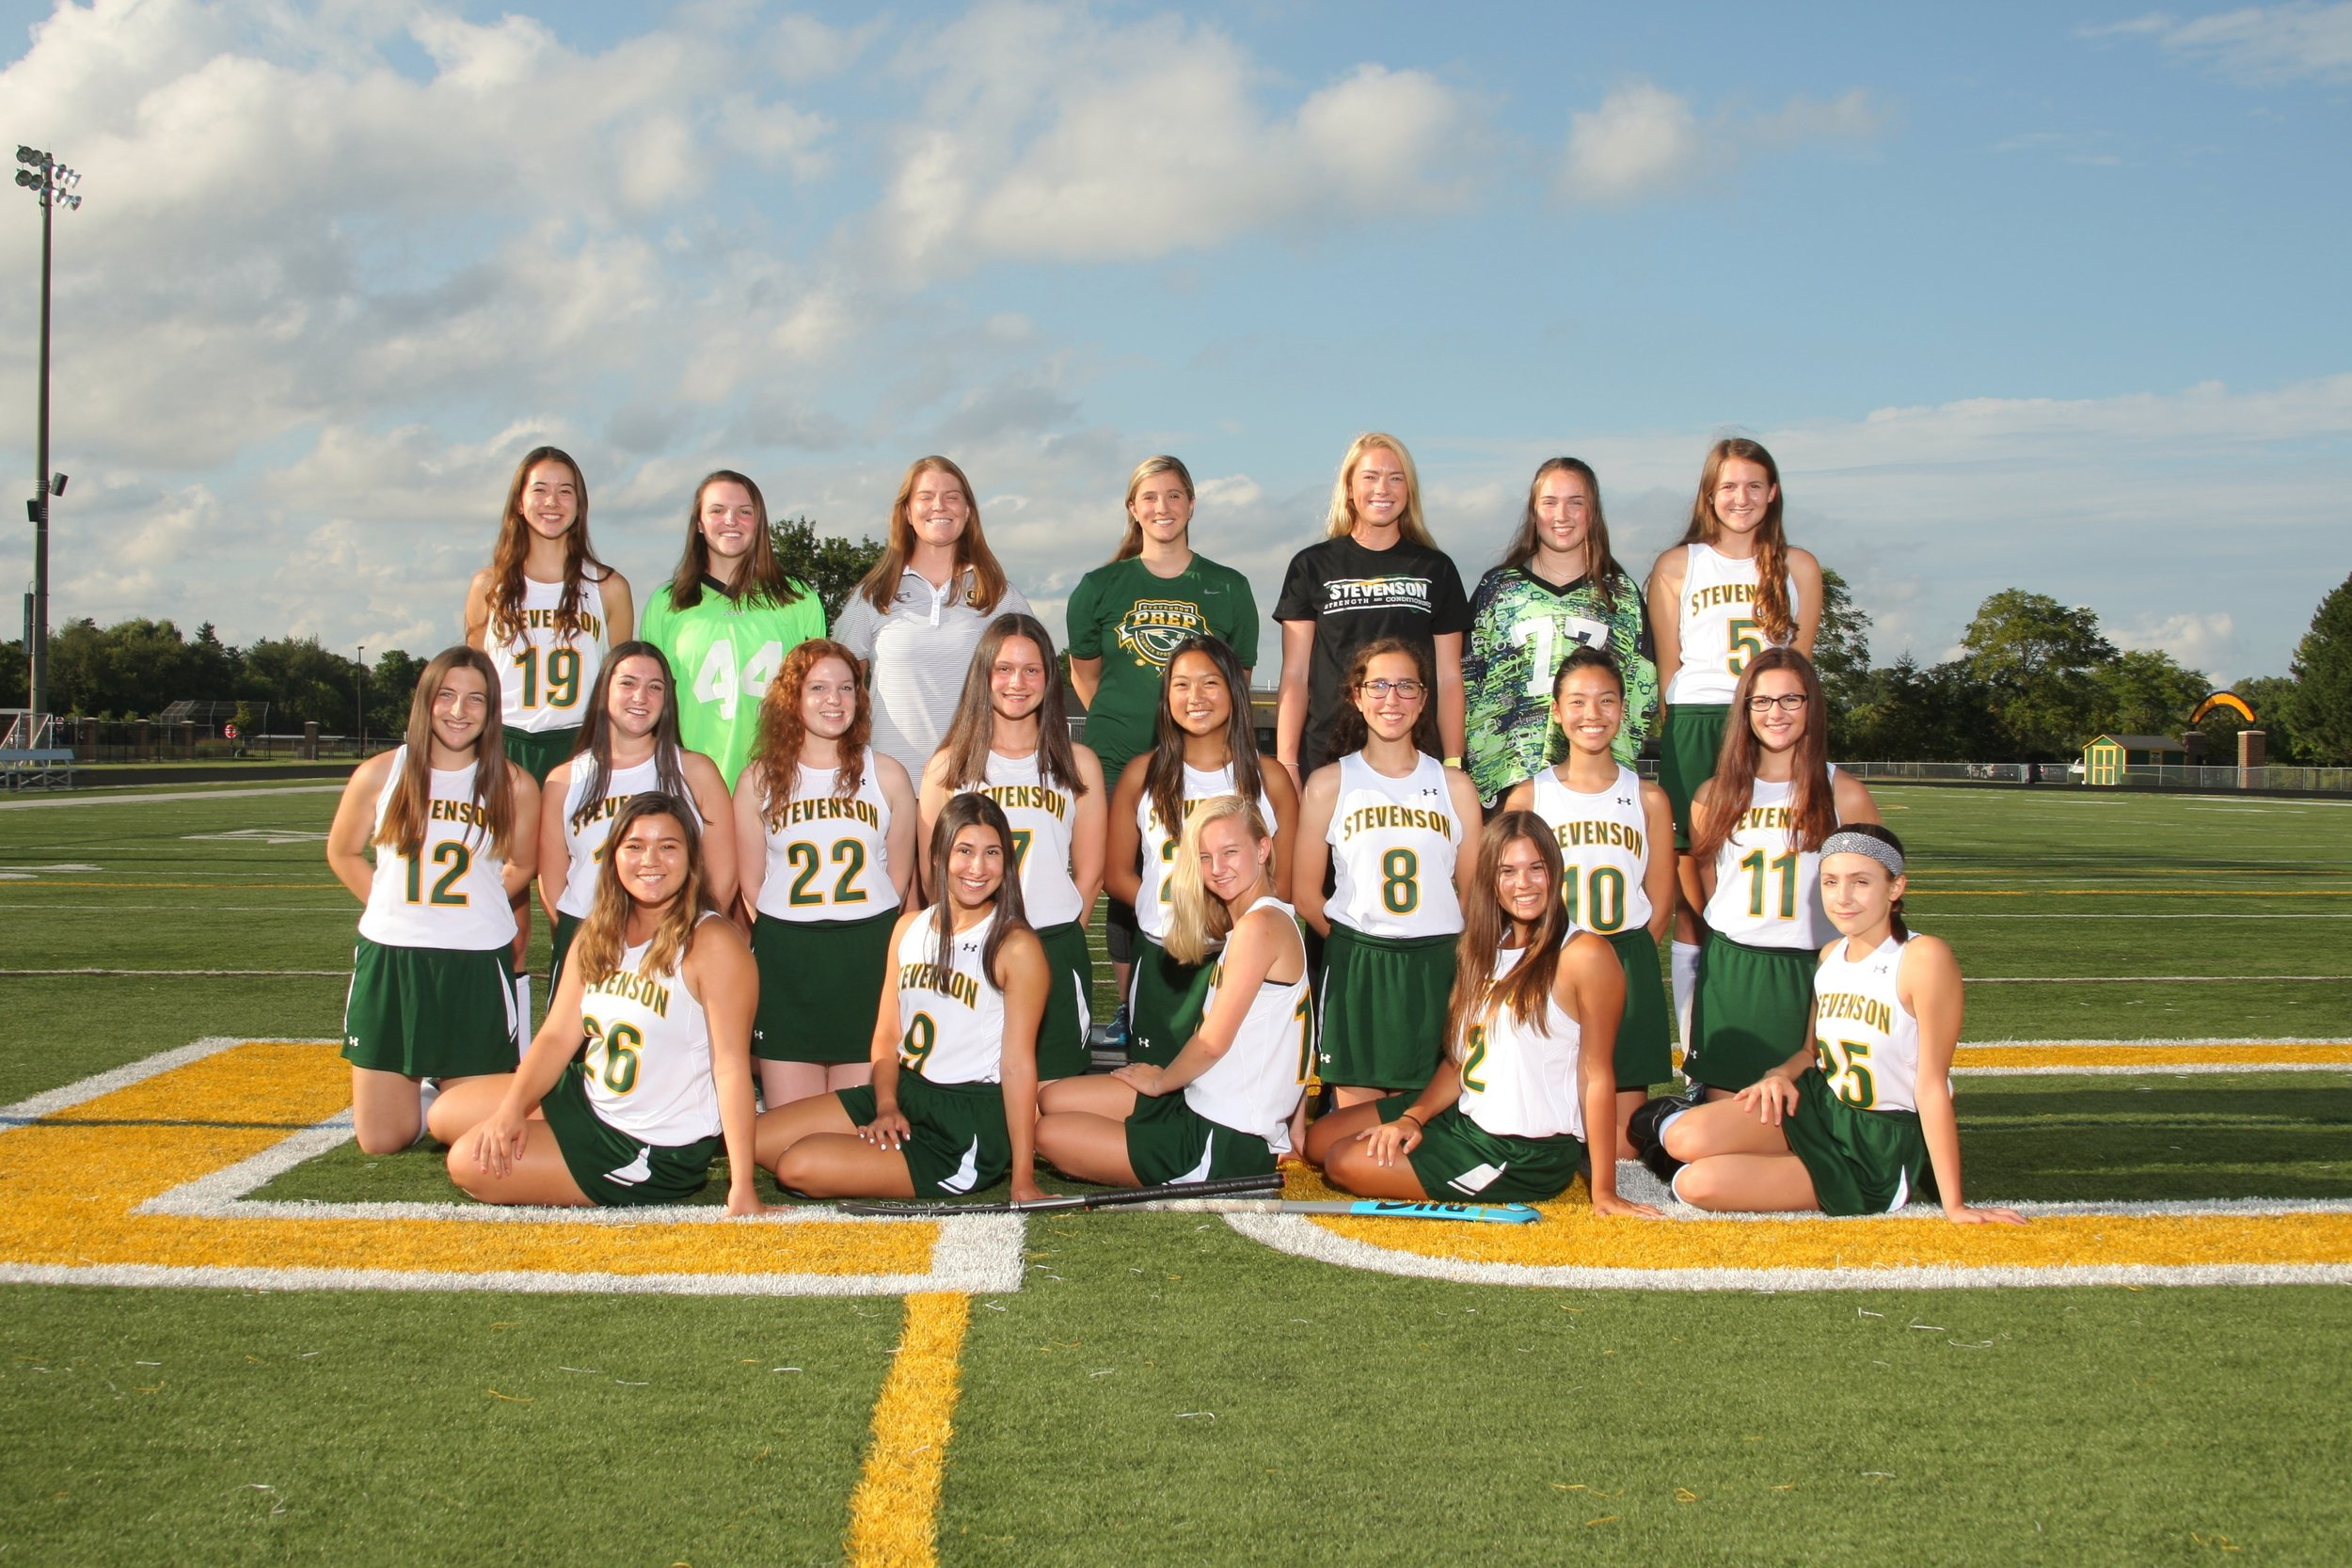 2018 STEVENSON HIGH SCHOOL VARSITY FIELD HOCKEY TEAM